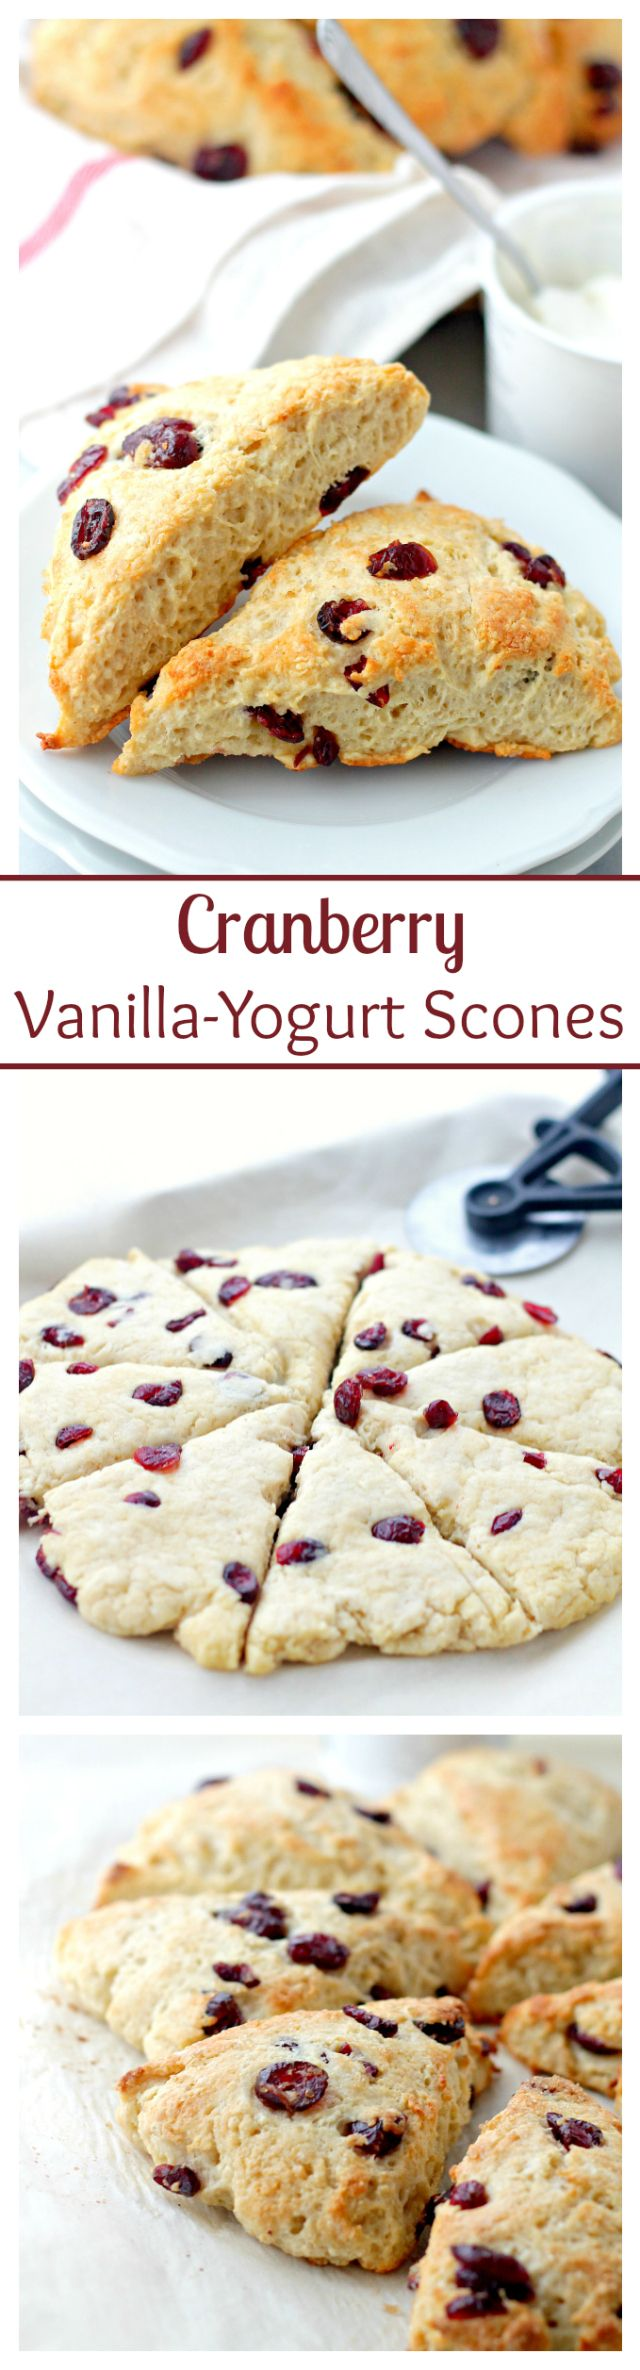 Cranberry and Vanilla-Yogurt Scones   www.diethood.com   Lightened-up, no-butter, sweet Scones made with a delicious vanilla yogurt and ruby red cranberries. #ad